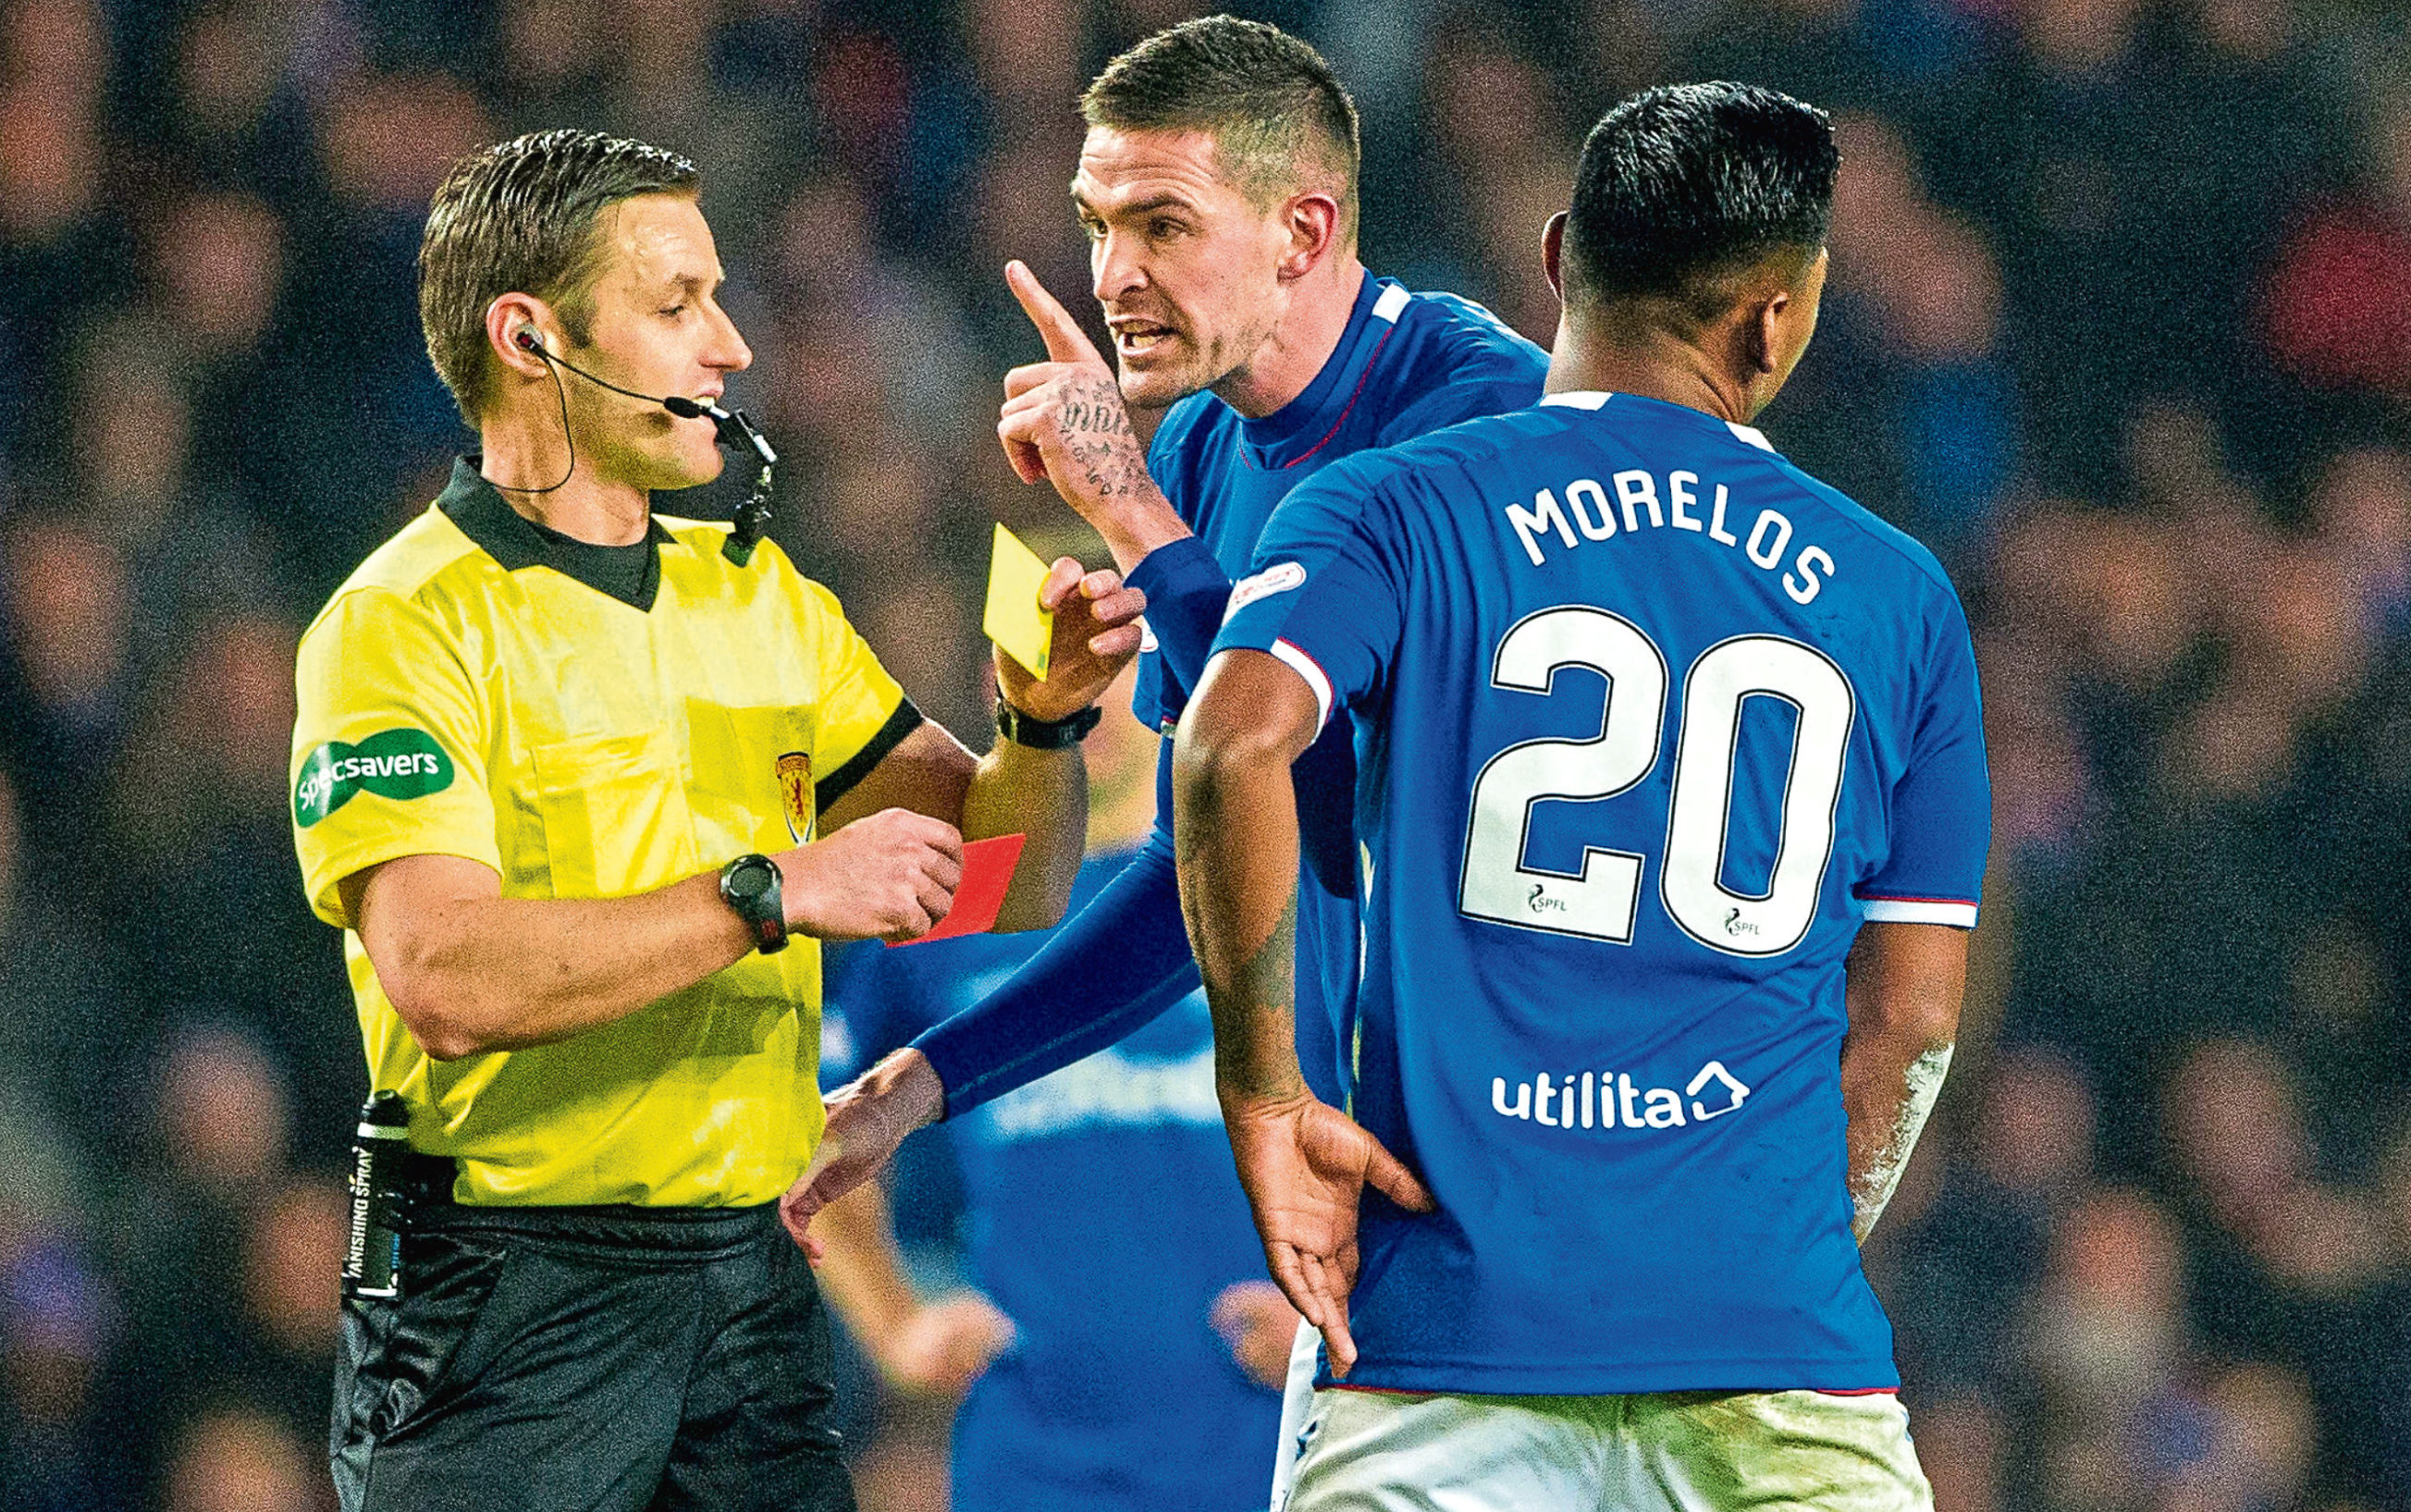 x 05/12/18 LADBROKES PREMIERSHIP RANGERS v ABERDEEN (0-1) IBROX - GLASGOW Rangers' Alfredo Morelos leaves the pitch after receiving a red card from referee Steven McLean as Kyle Lafferty protests